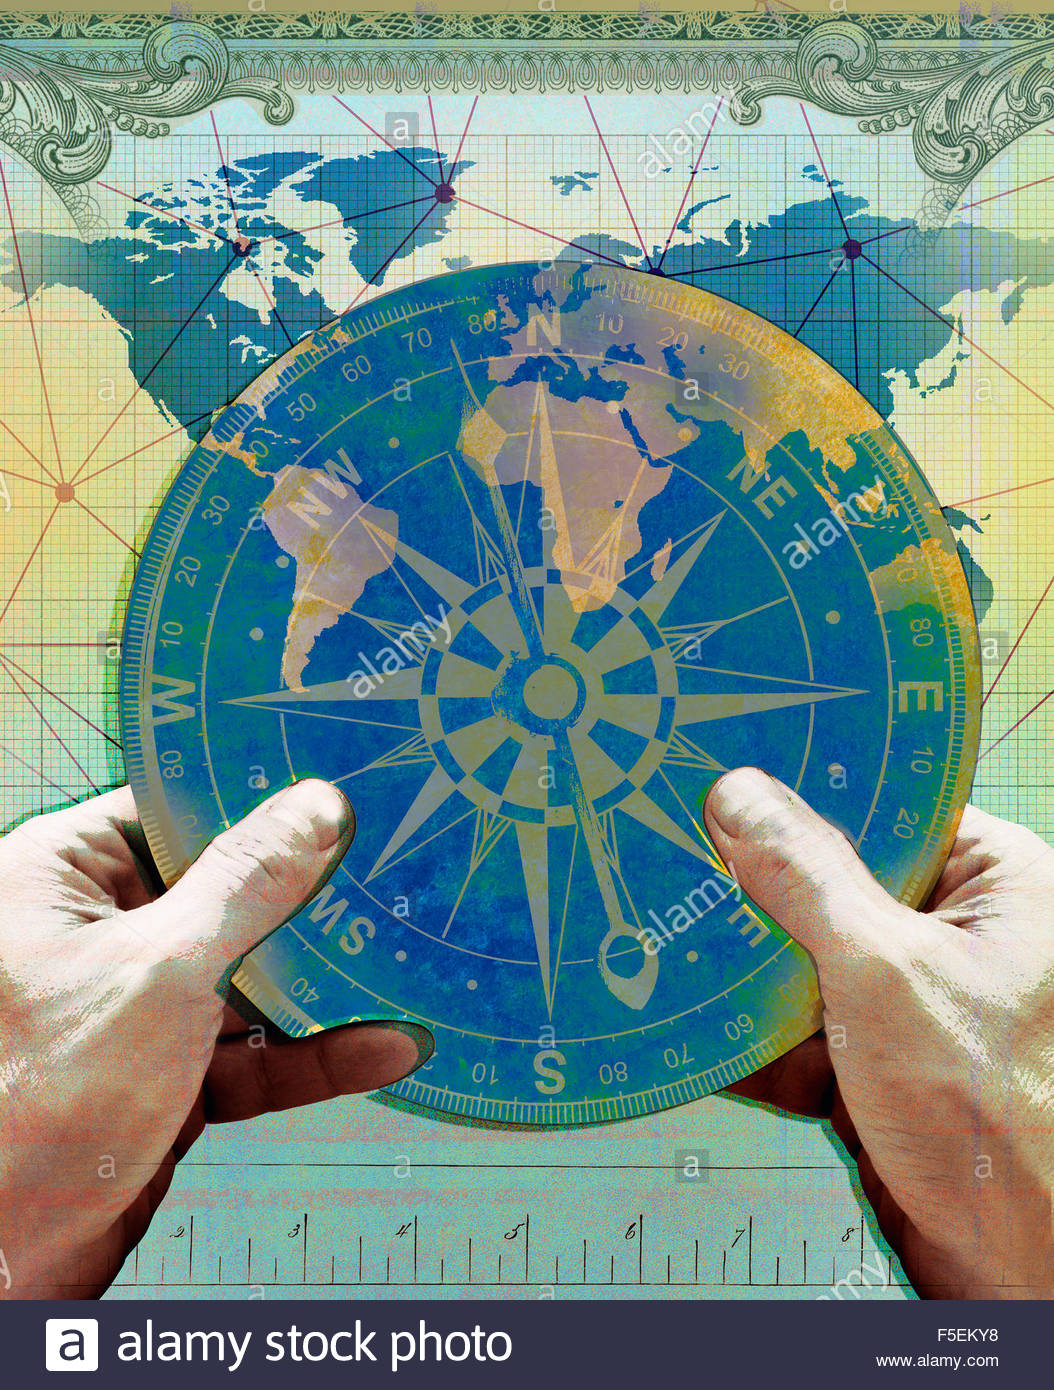 Navigation World Map.Hands Holding Navigation Compass Over Chart Of World Map Stock Photo